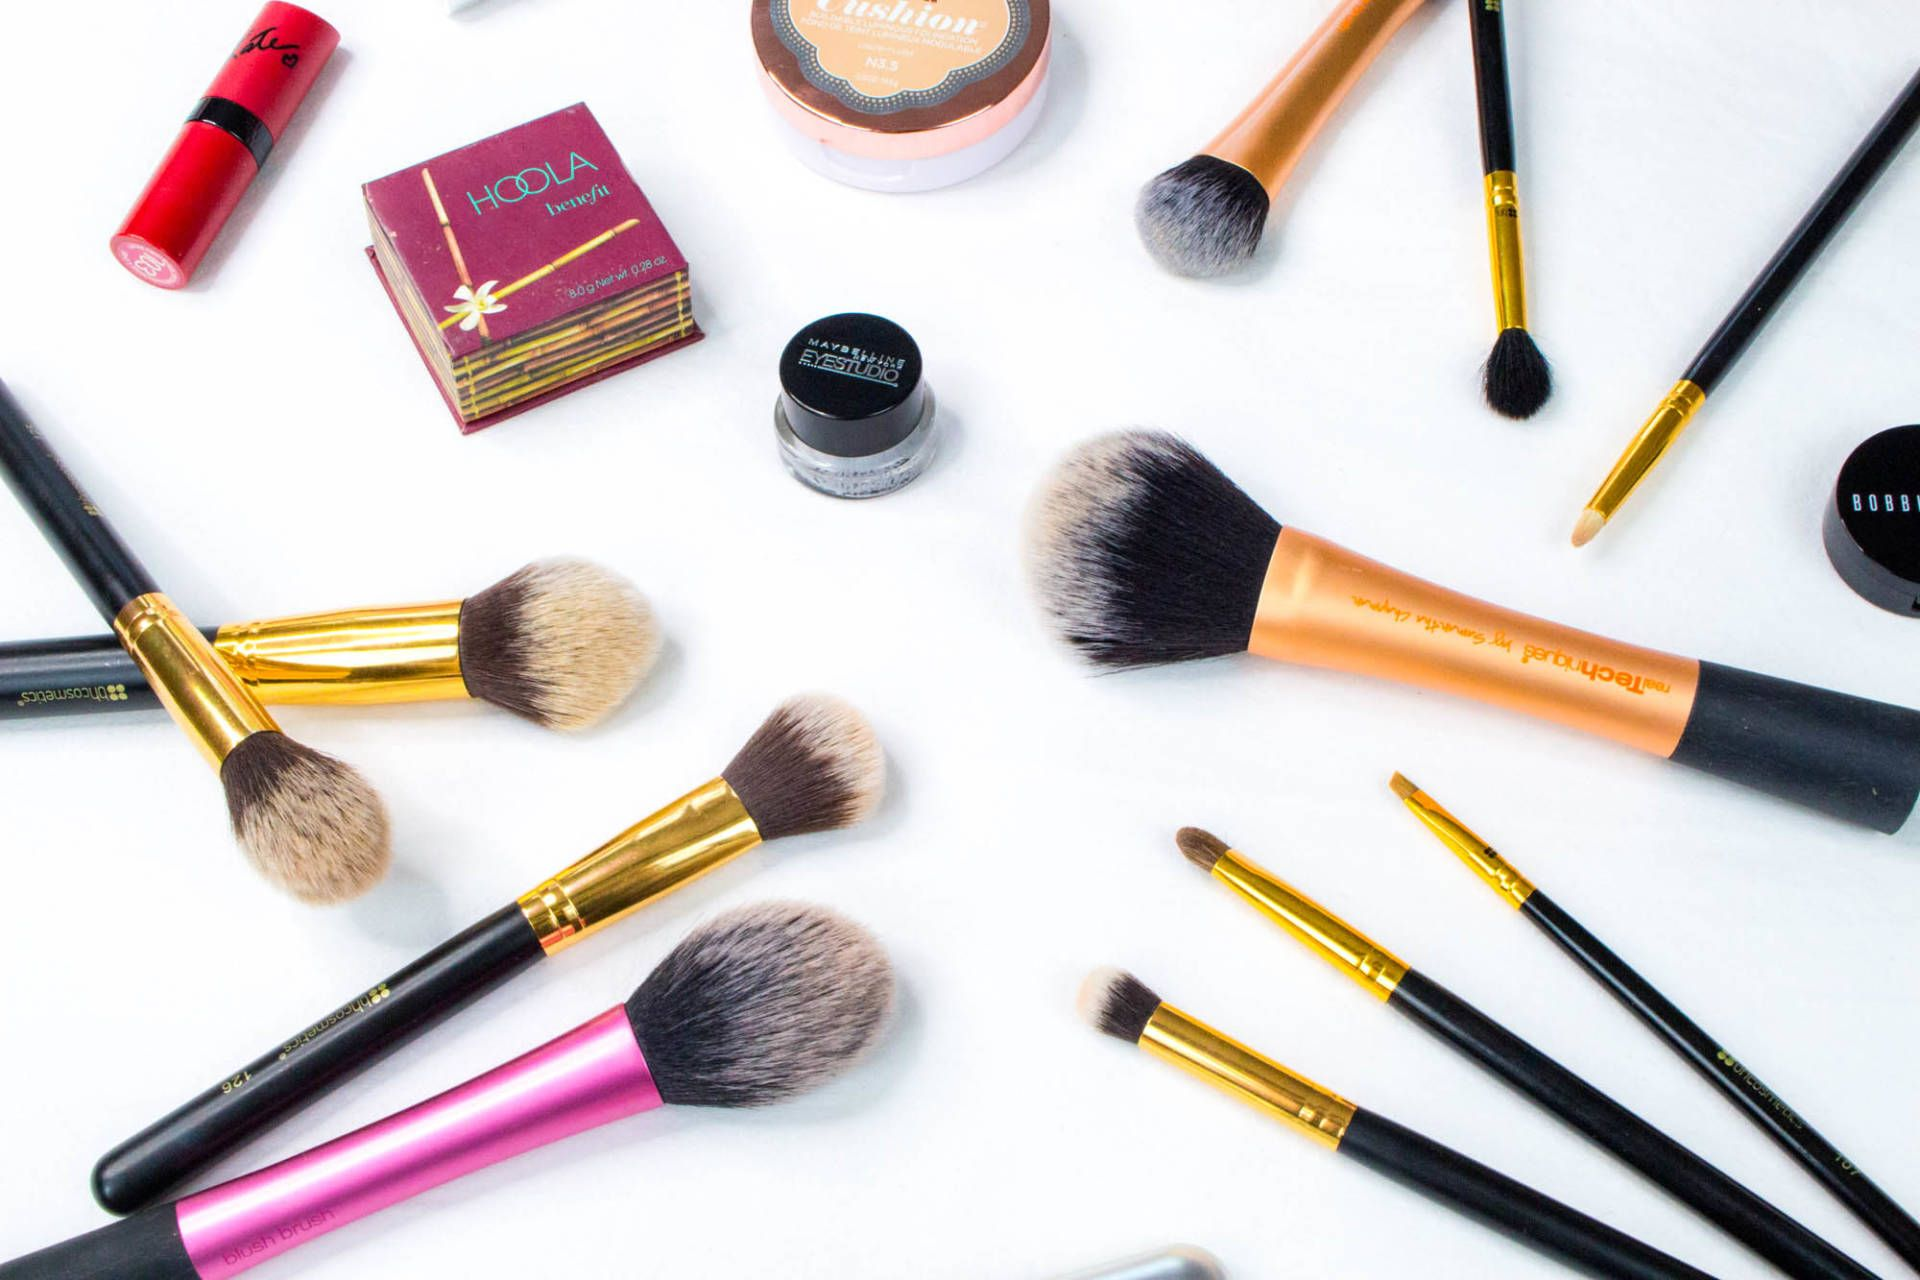 Affordable Makeup Brushes to Build Your Collection